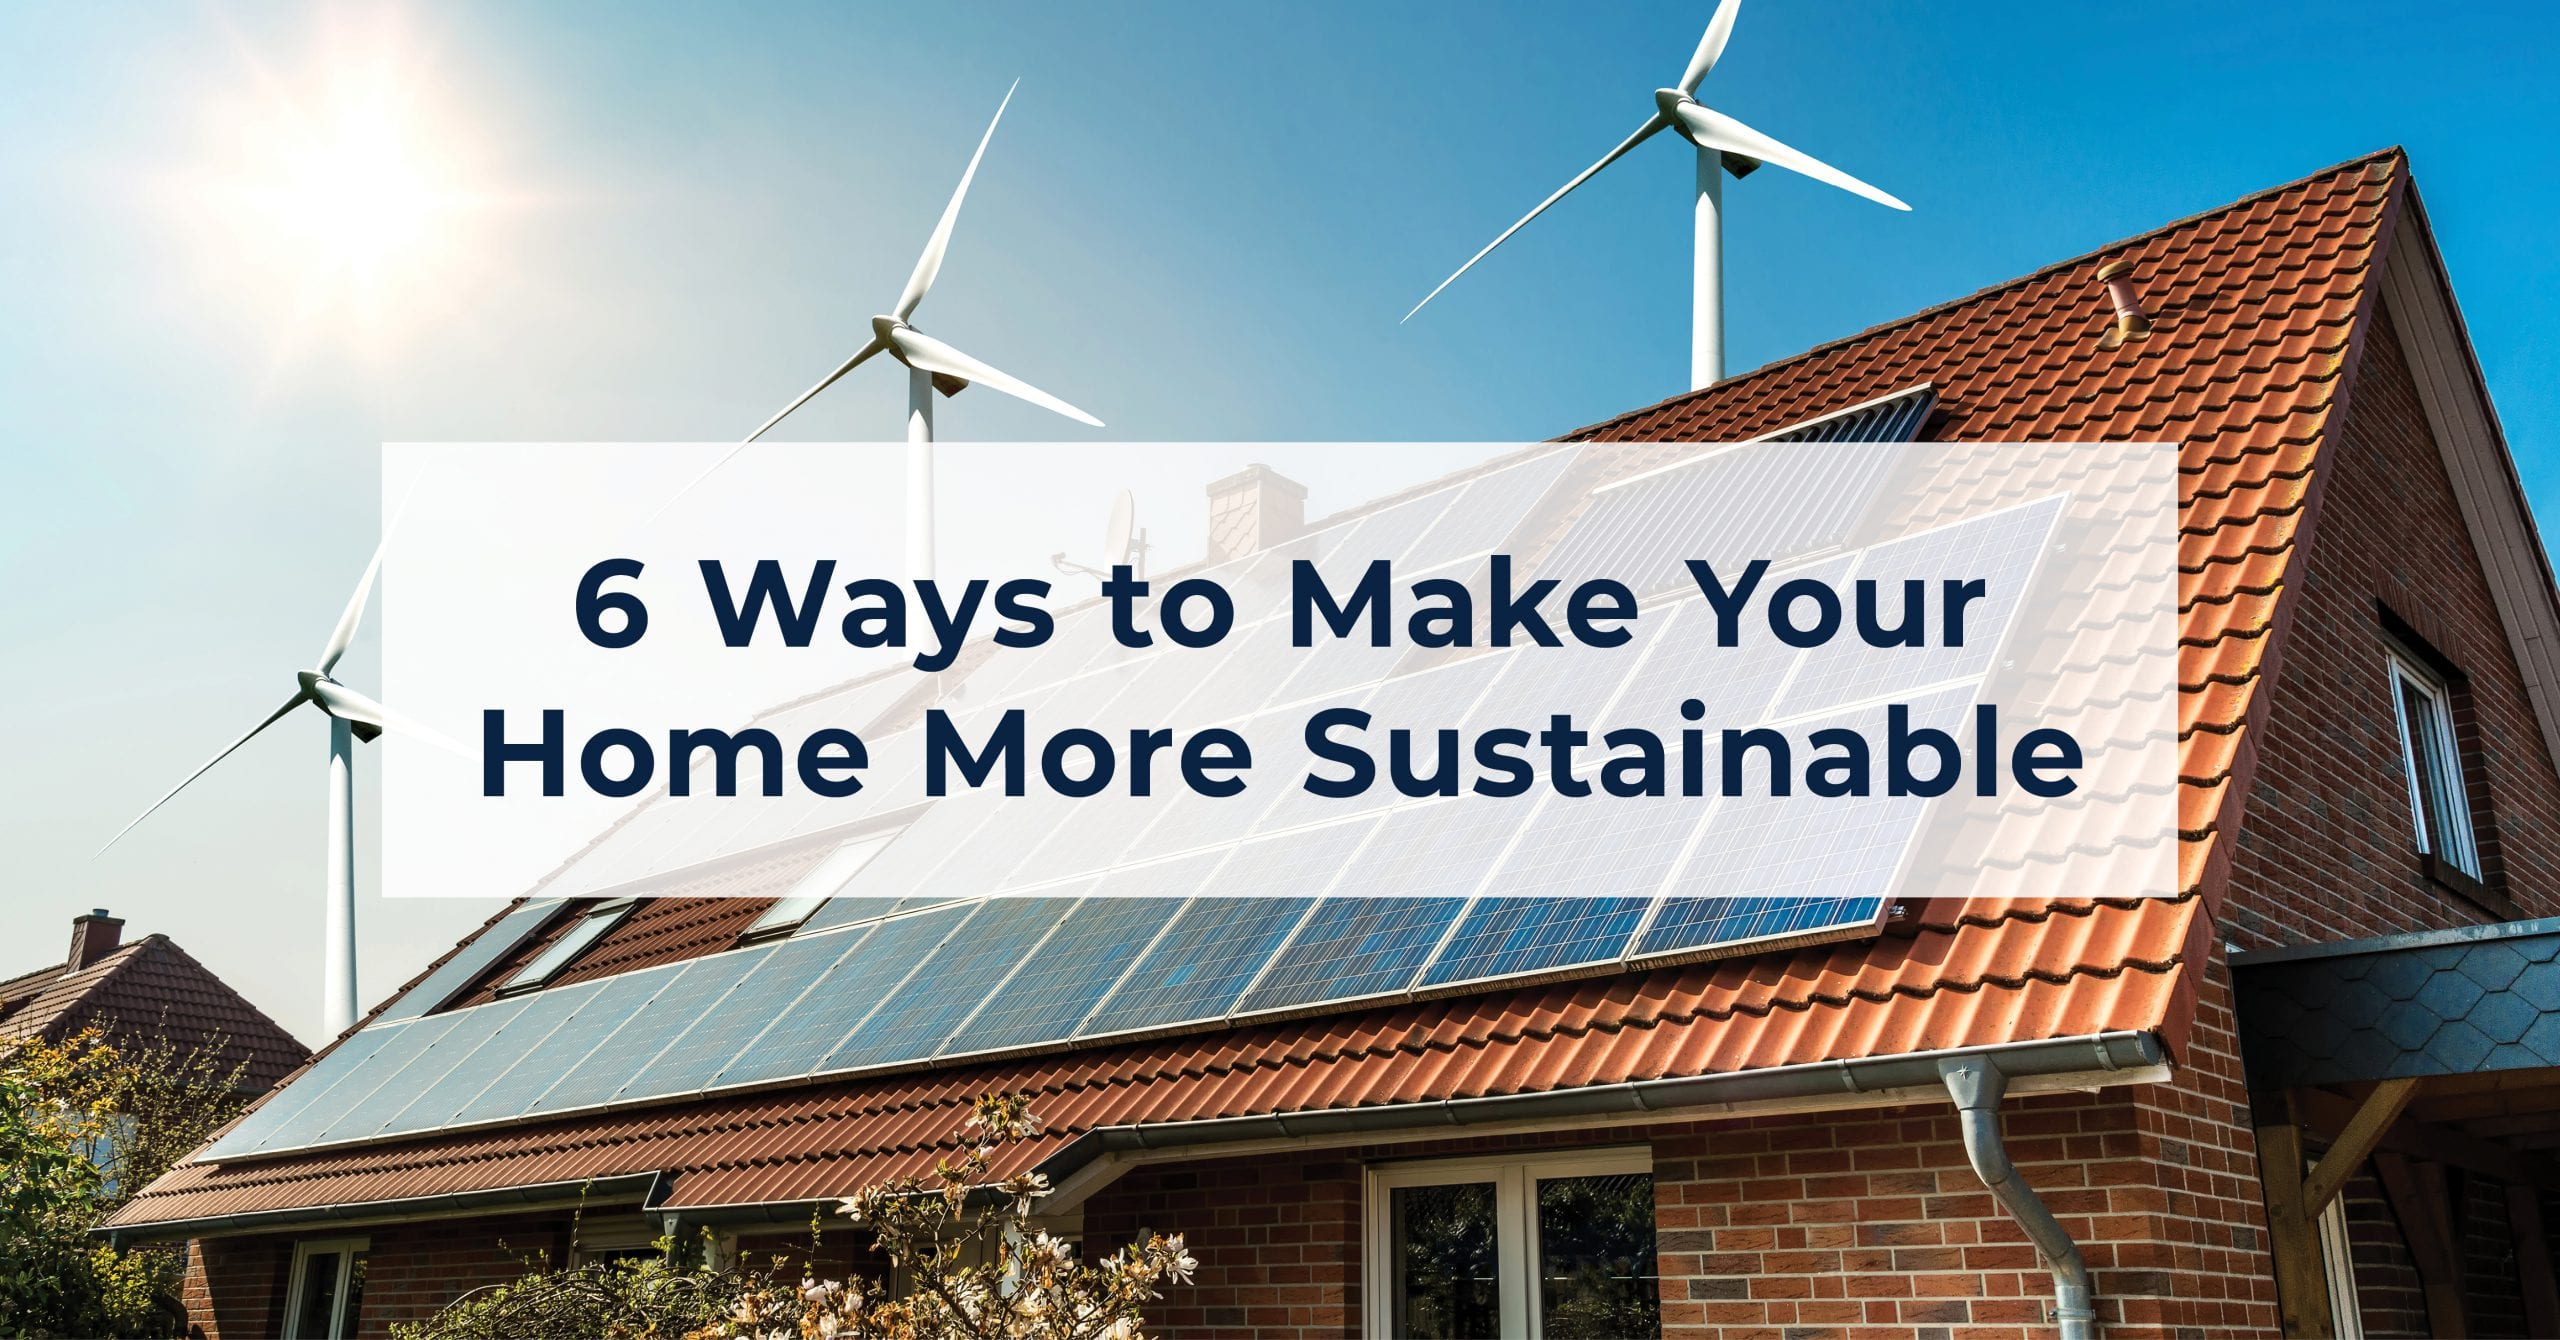 6 Ways to Make Your Home More Sustainable